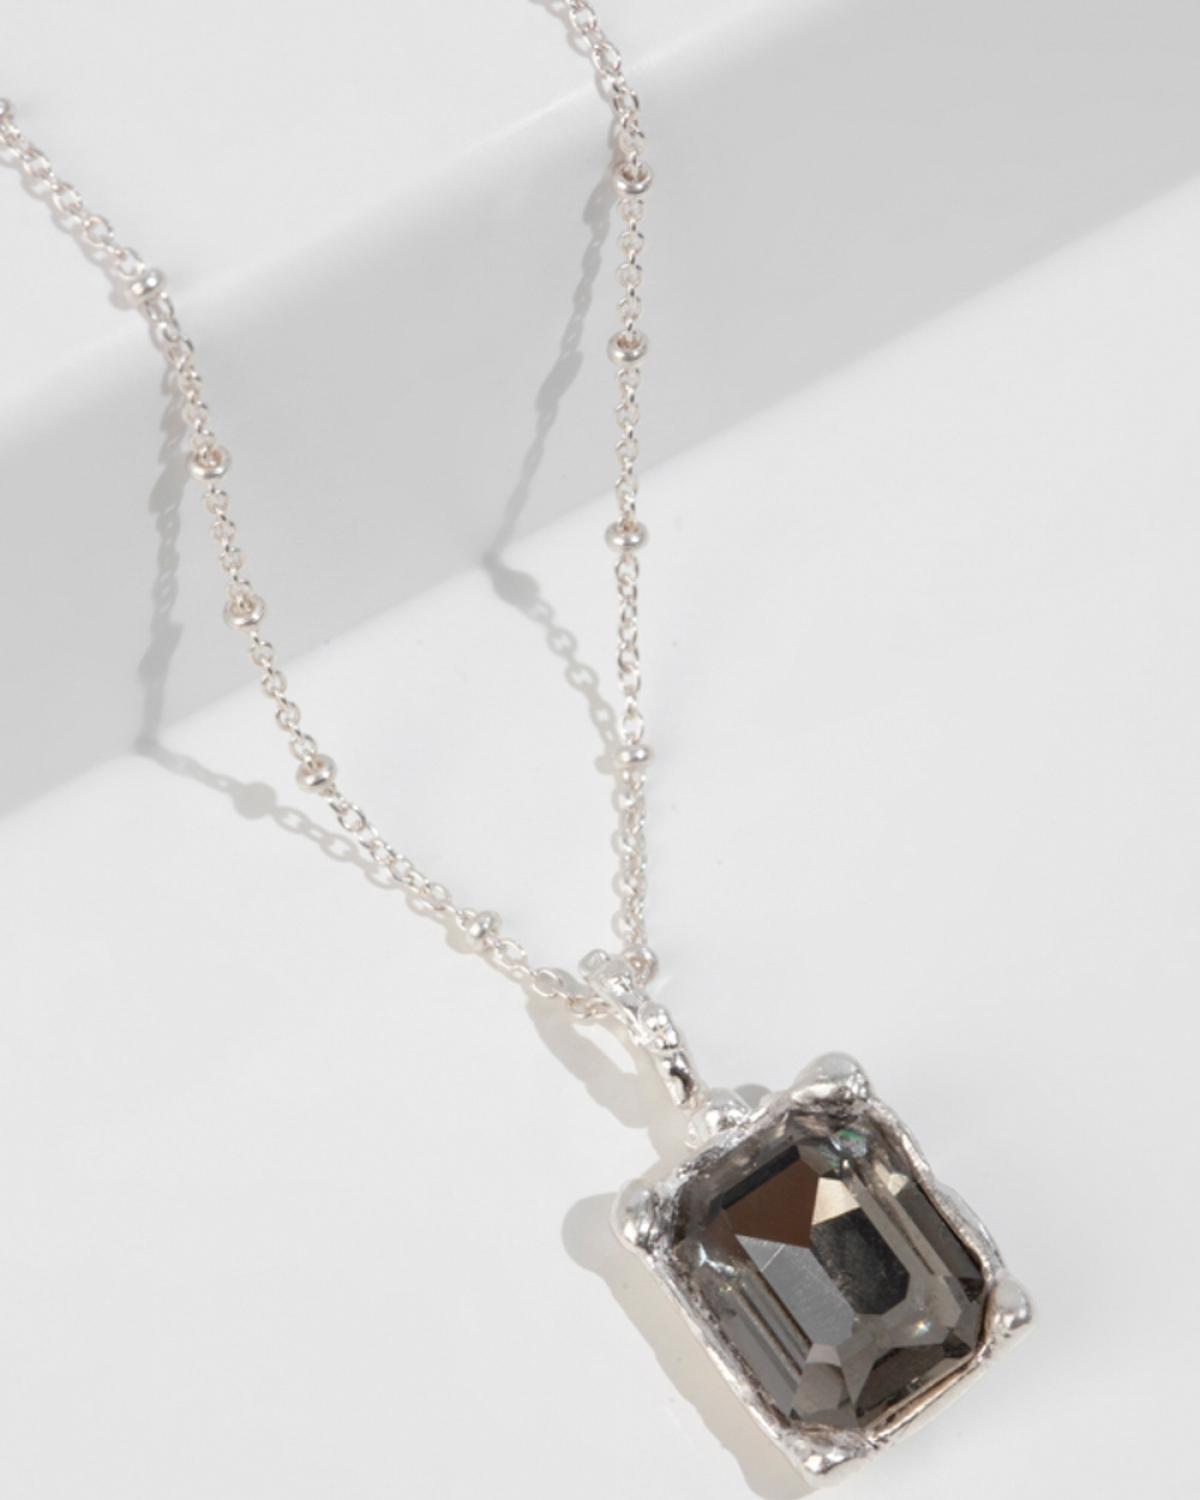 SOFIA Silver Pendant/Necklace